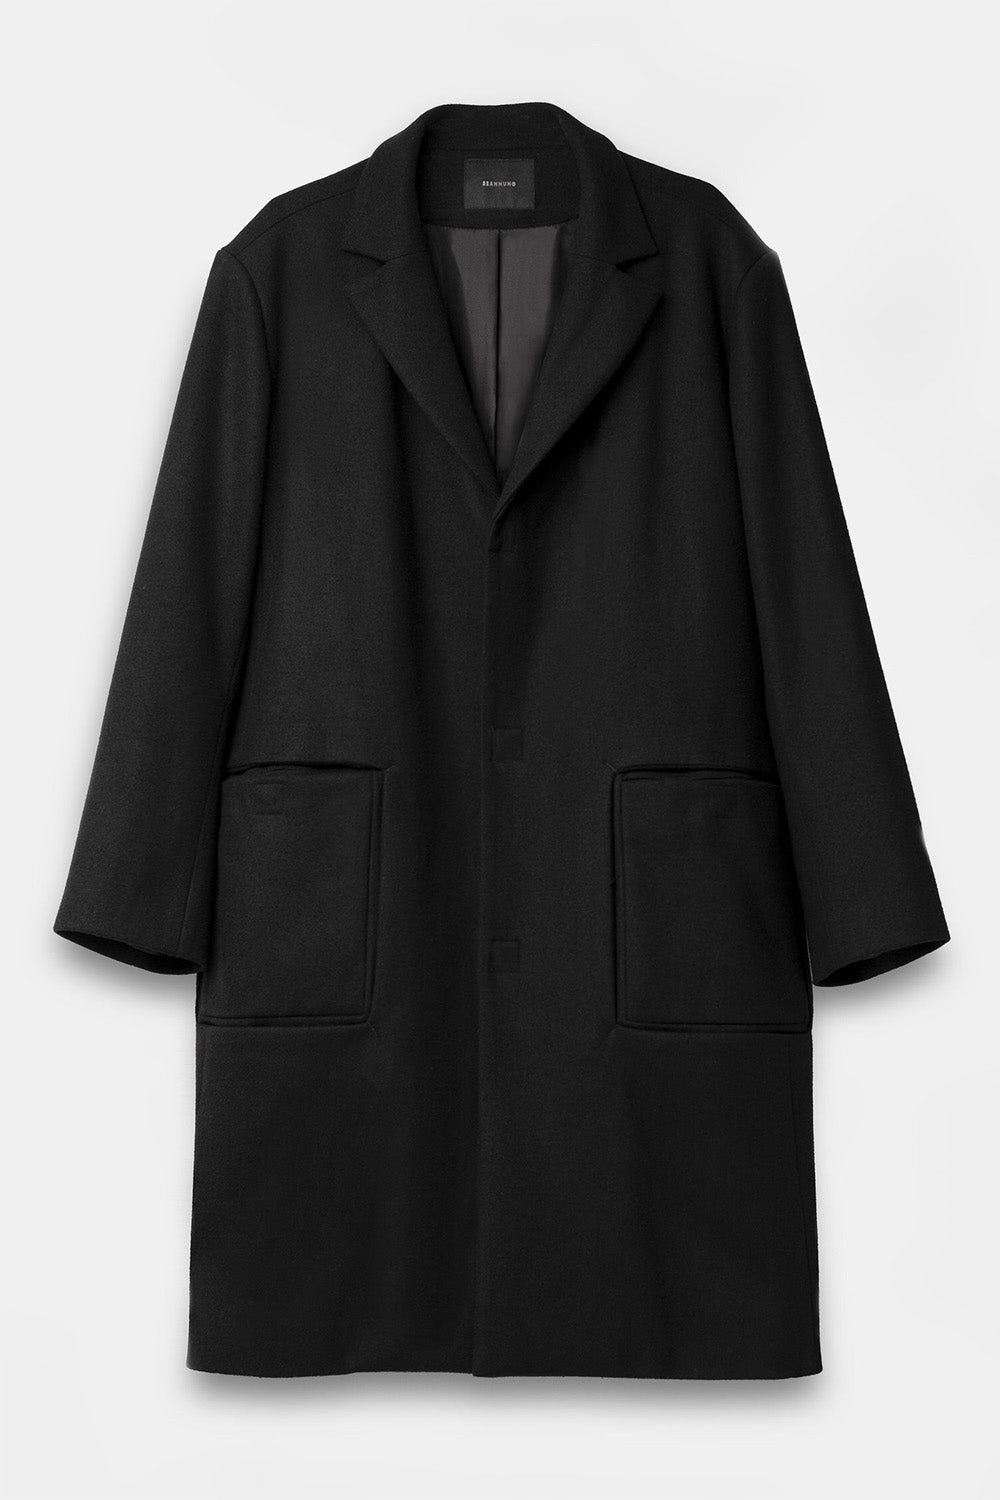 Wool coat in Black